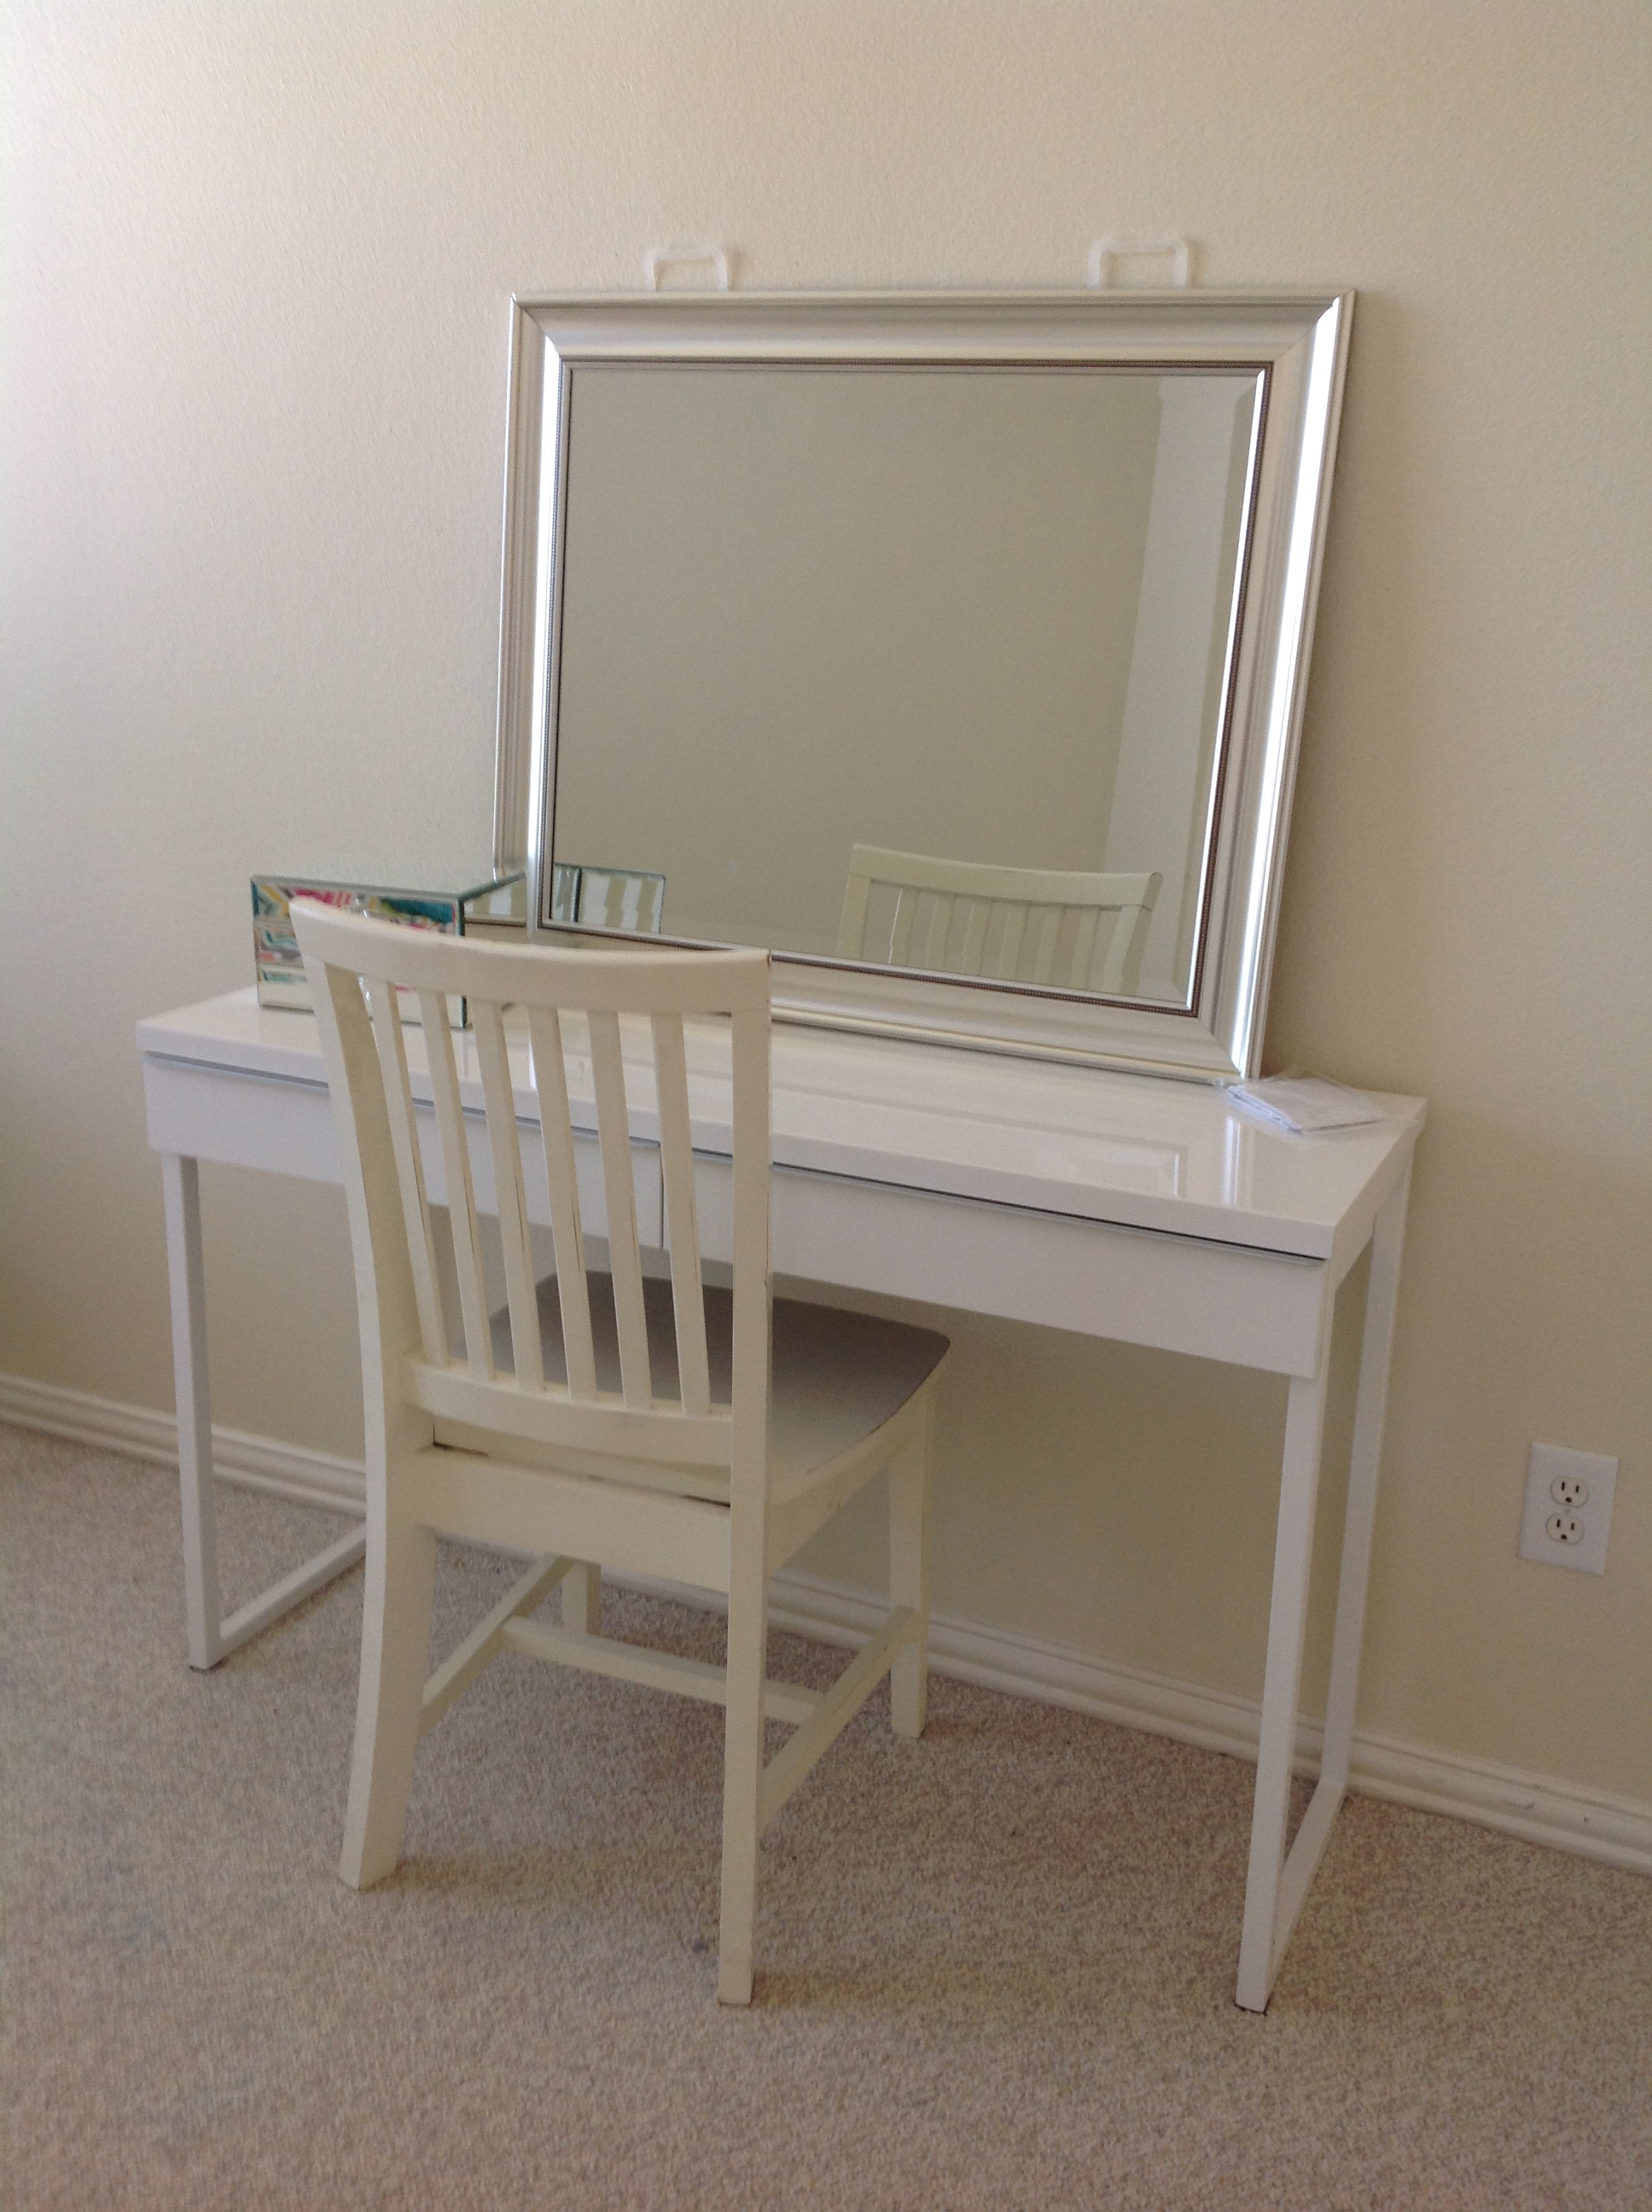 target white desk chair fishing bed covers while you were out we did a room makeover  ashley